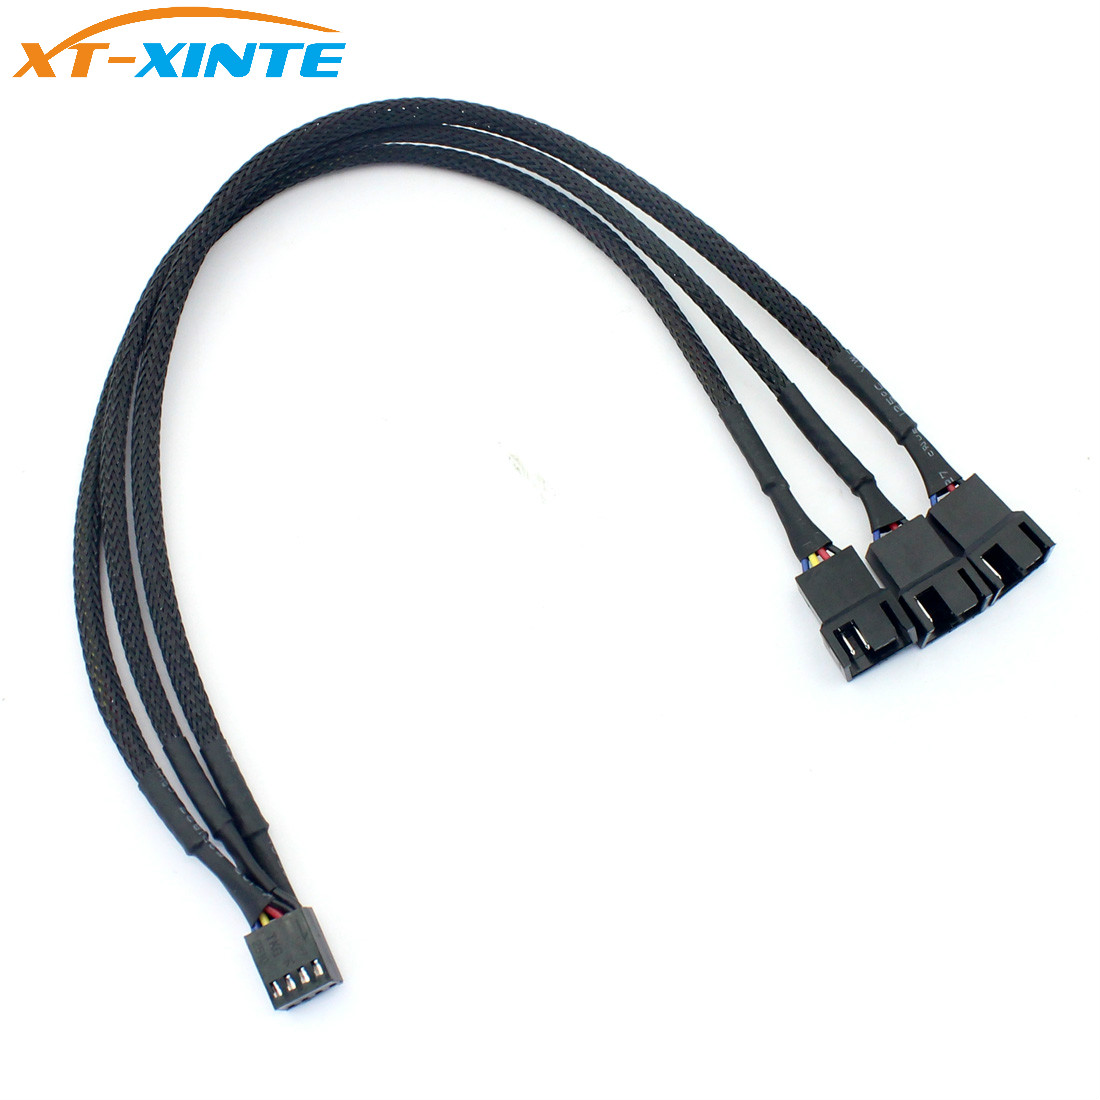 4Pin PWM 1 To 3 Ways Cooling Fan Power Supply Extension Cable Y Splitter Cord Multiplier Computer PC Chassis Cooed 22AWG 30cm